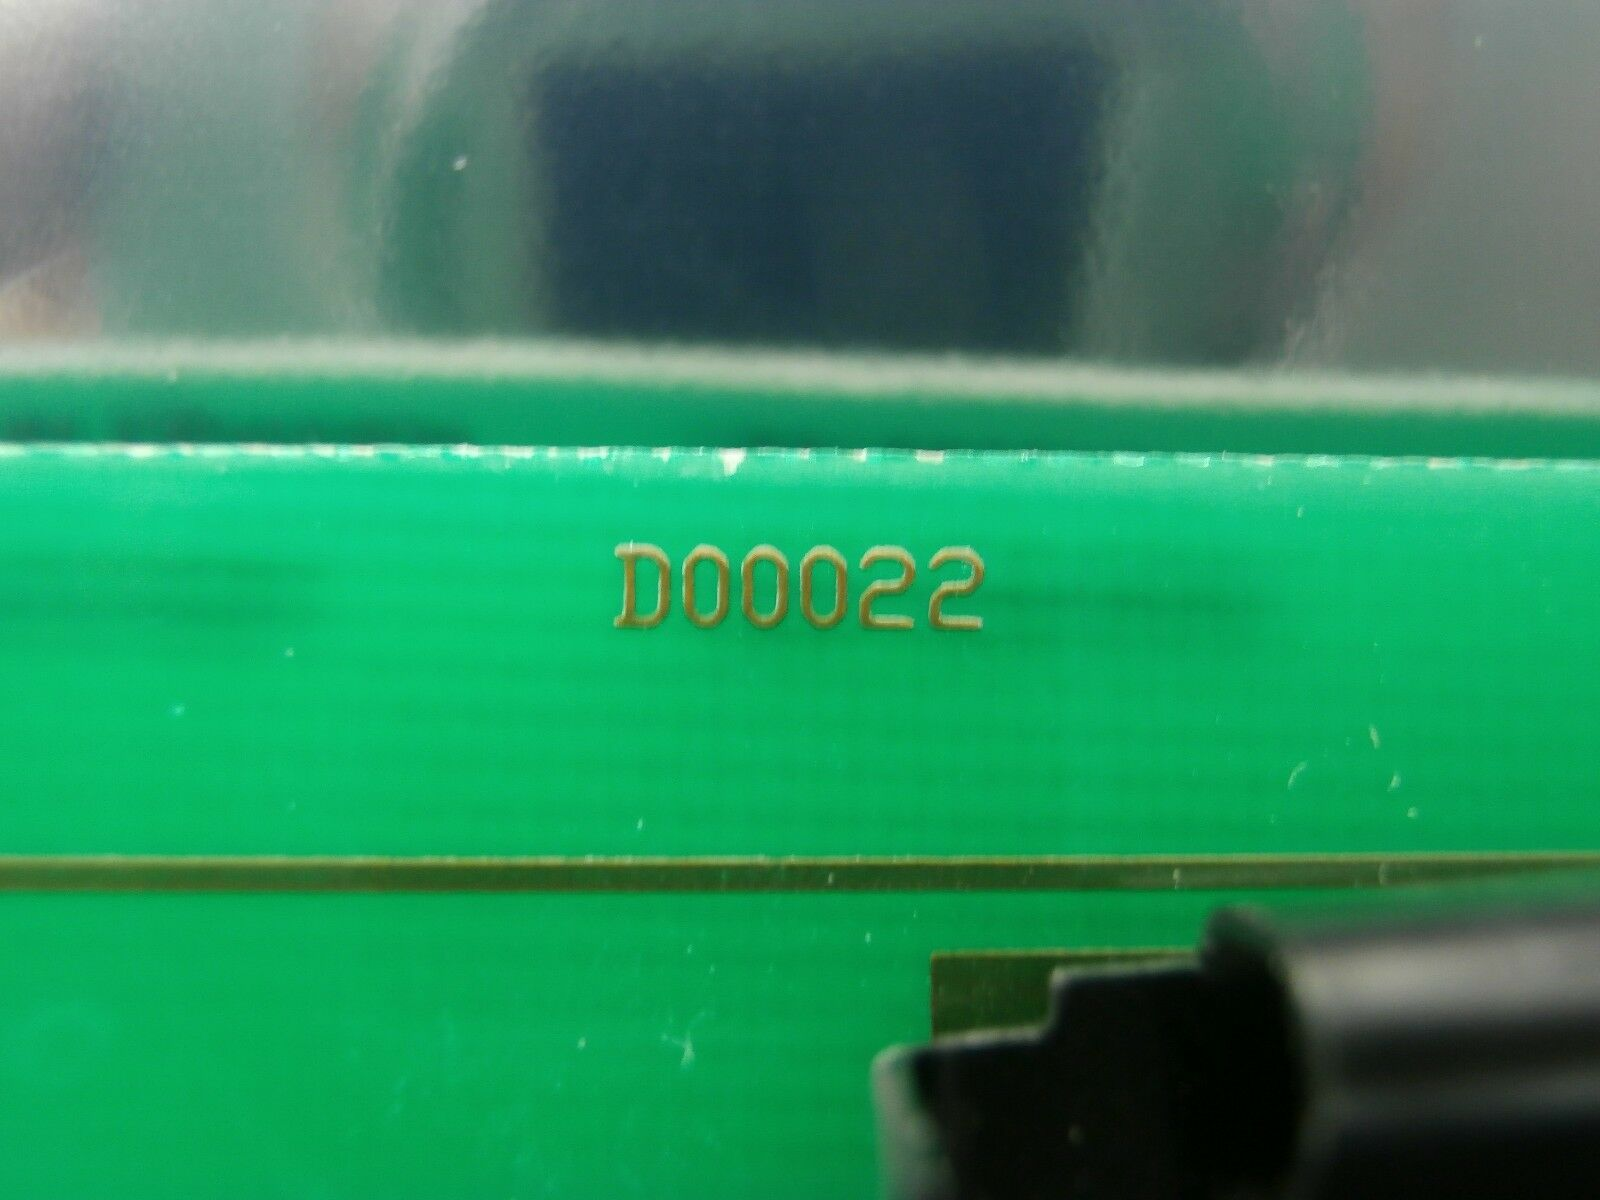 Nordiko Technical Services D00022 Amplifier PCB Card TLTD-2/425 Plugs Used